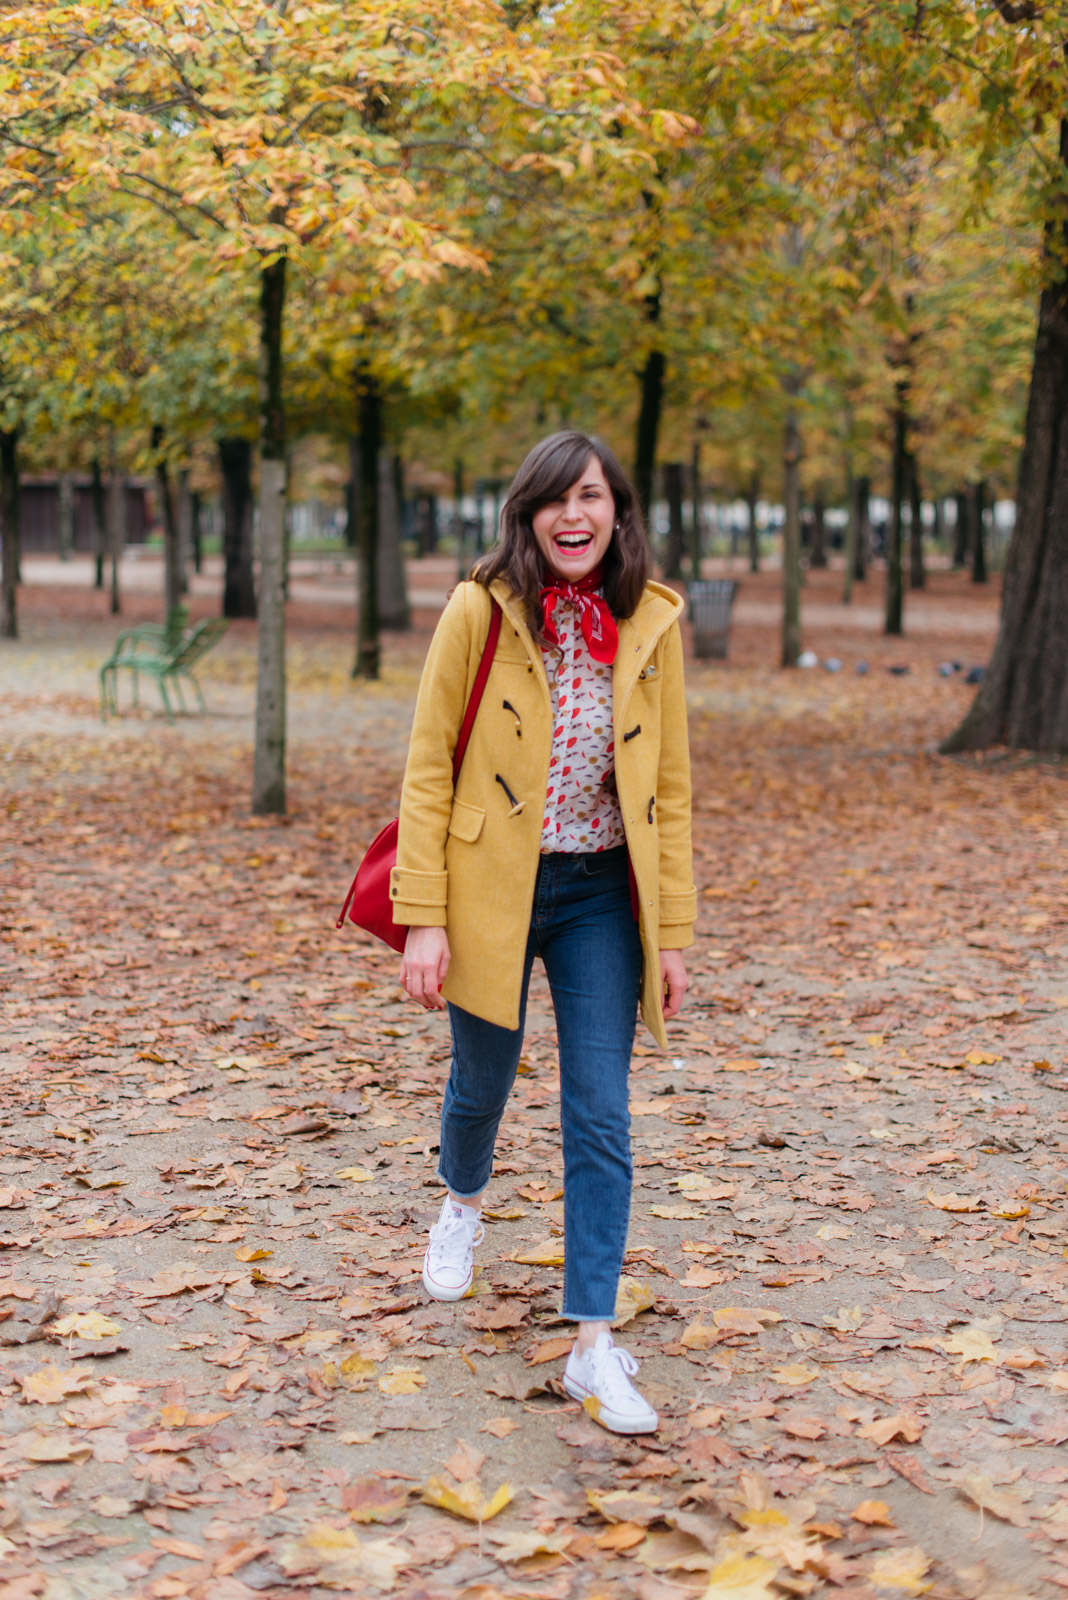 Blog-Mode-And-The-City-Lokks-Fille-de-Automne-10